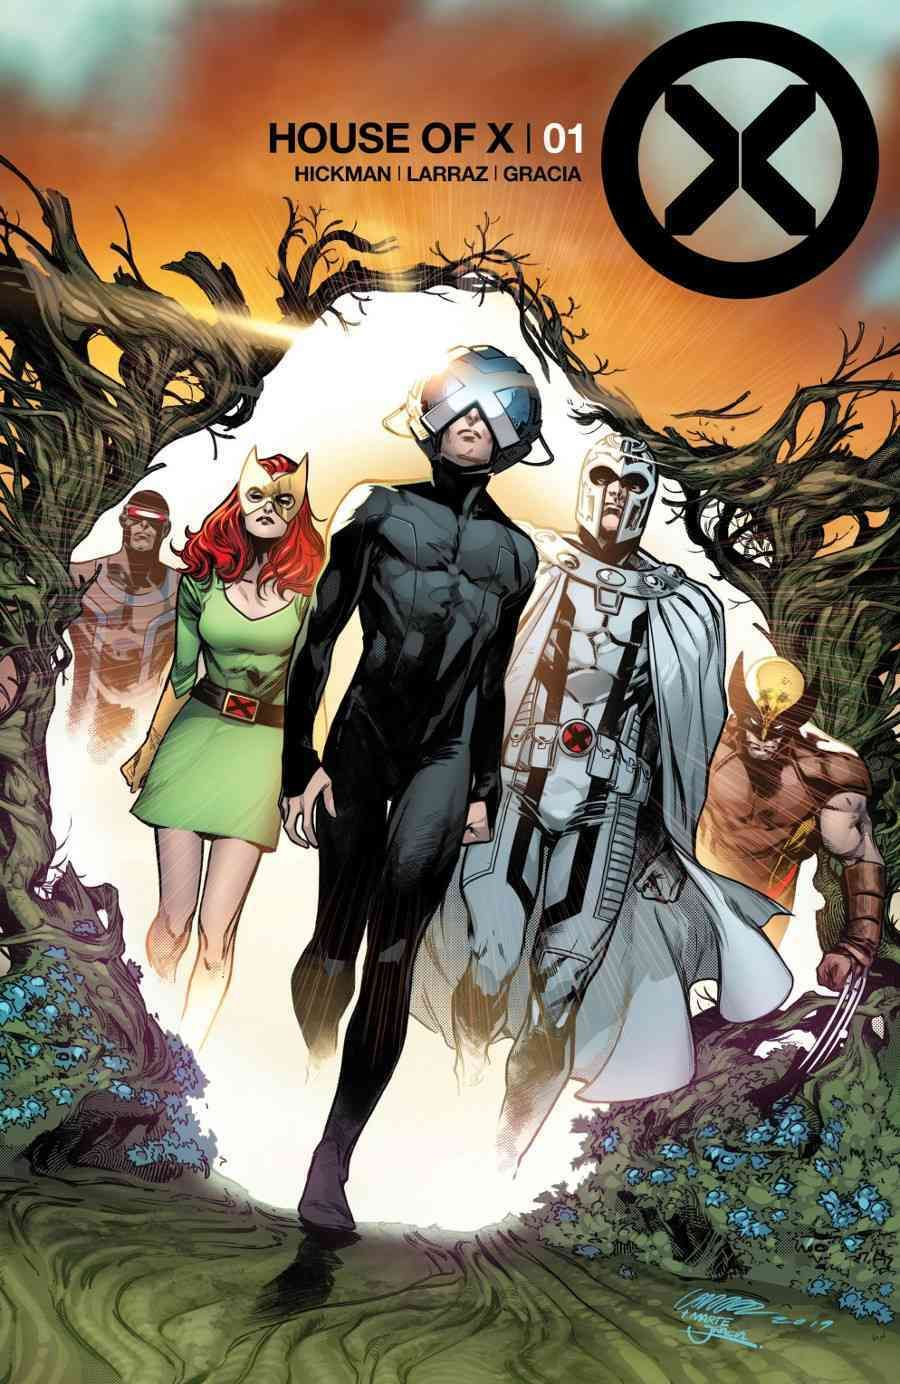 First Look At New Era Of X Men By Jonathan Hickman Revealed By Marvel Animated Times Marvel Comics Art Comics Marvel Comics